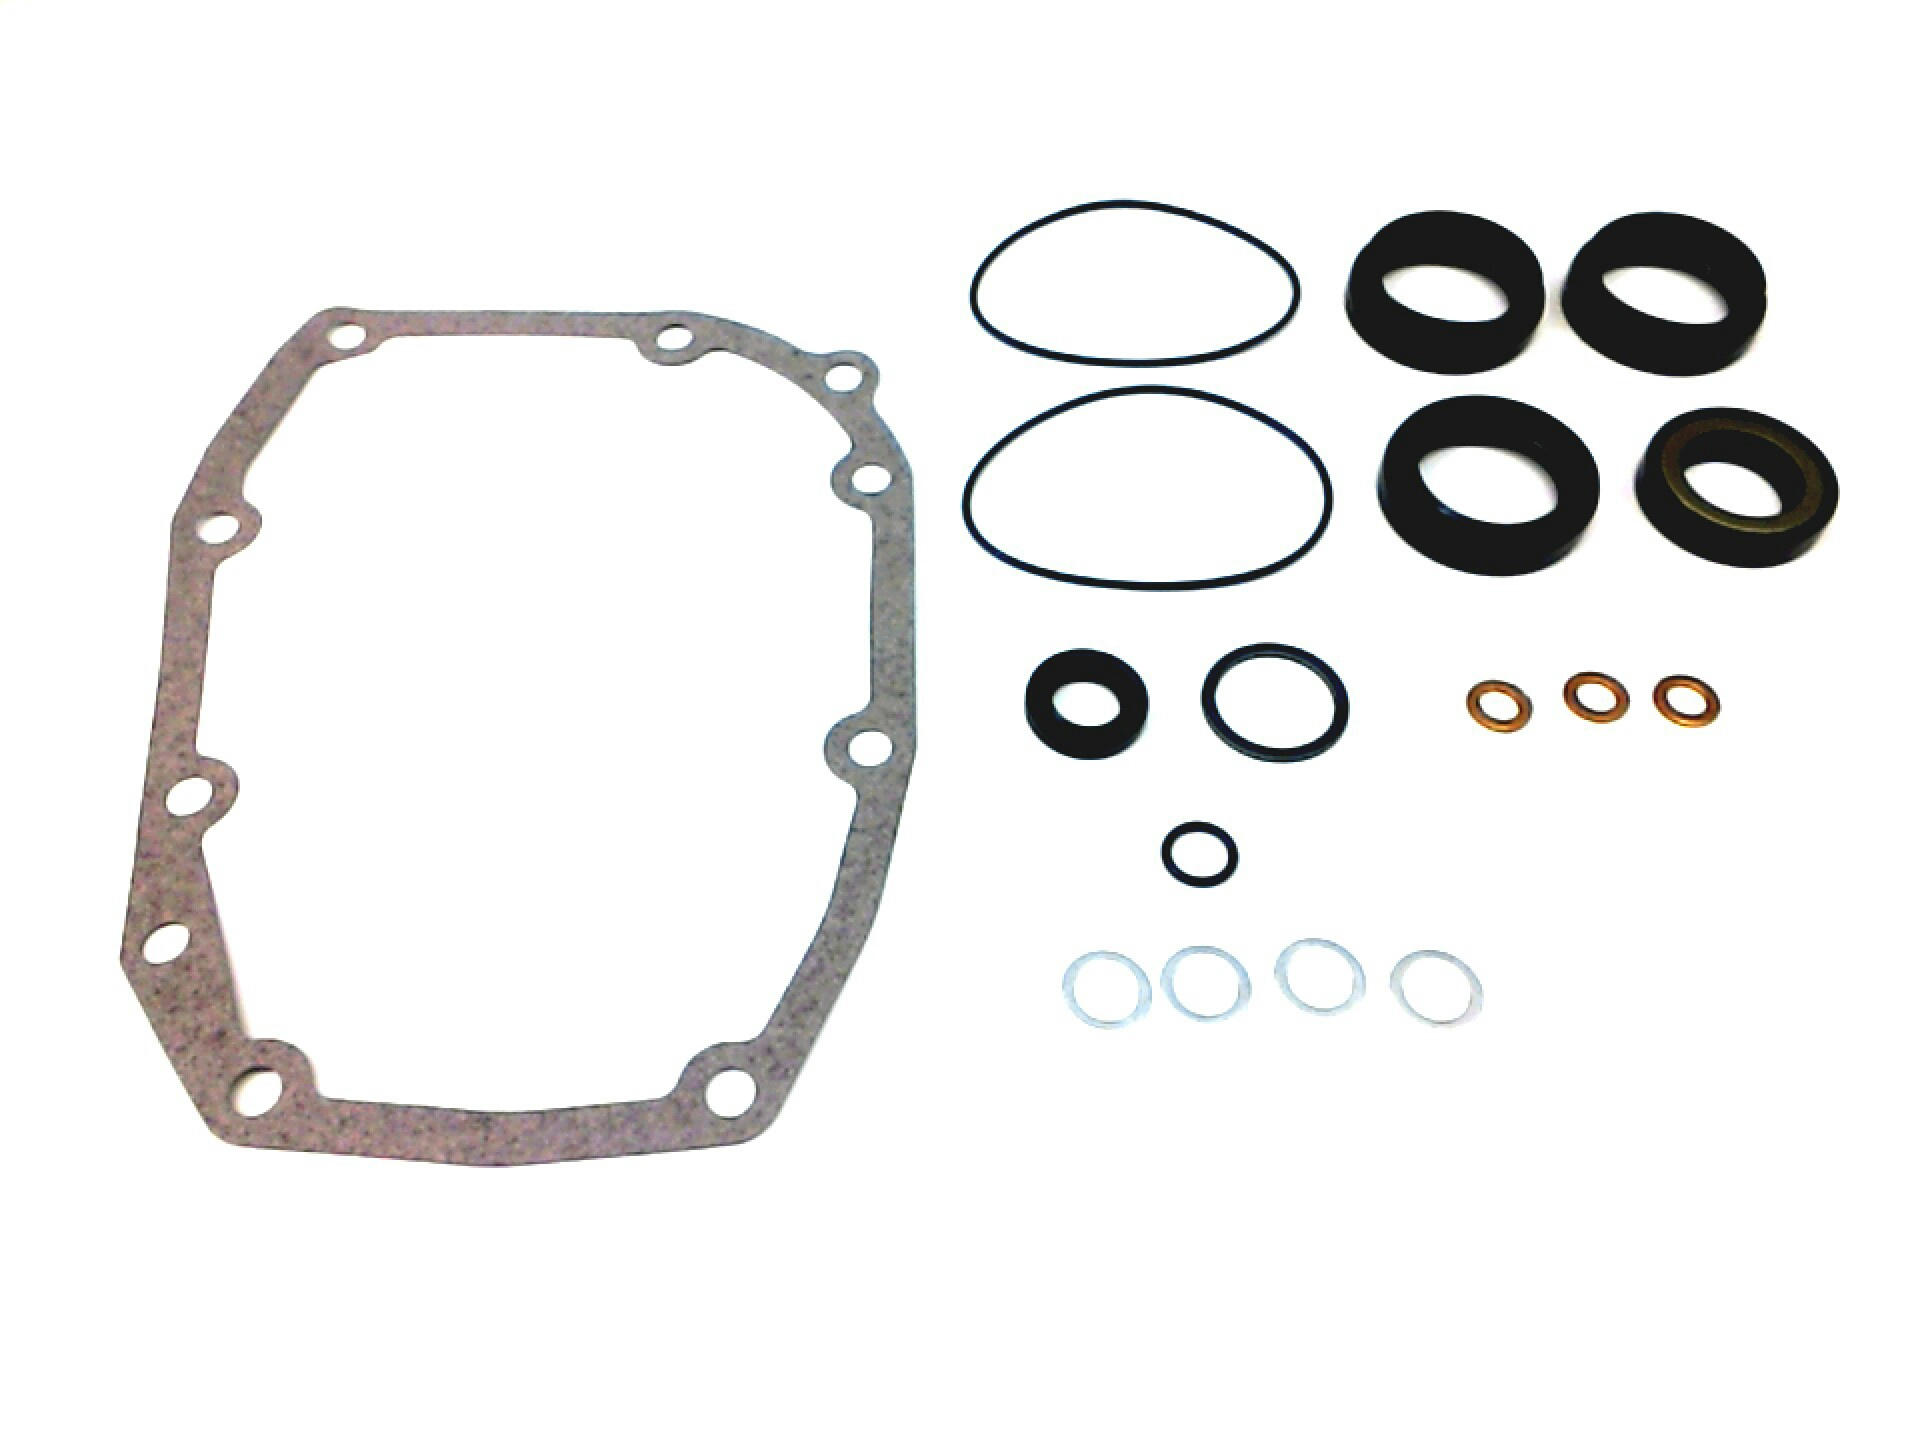 Subaru Outback Gasket And Seal Kit Manual Transmission